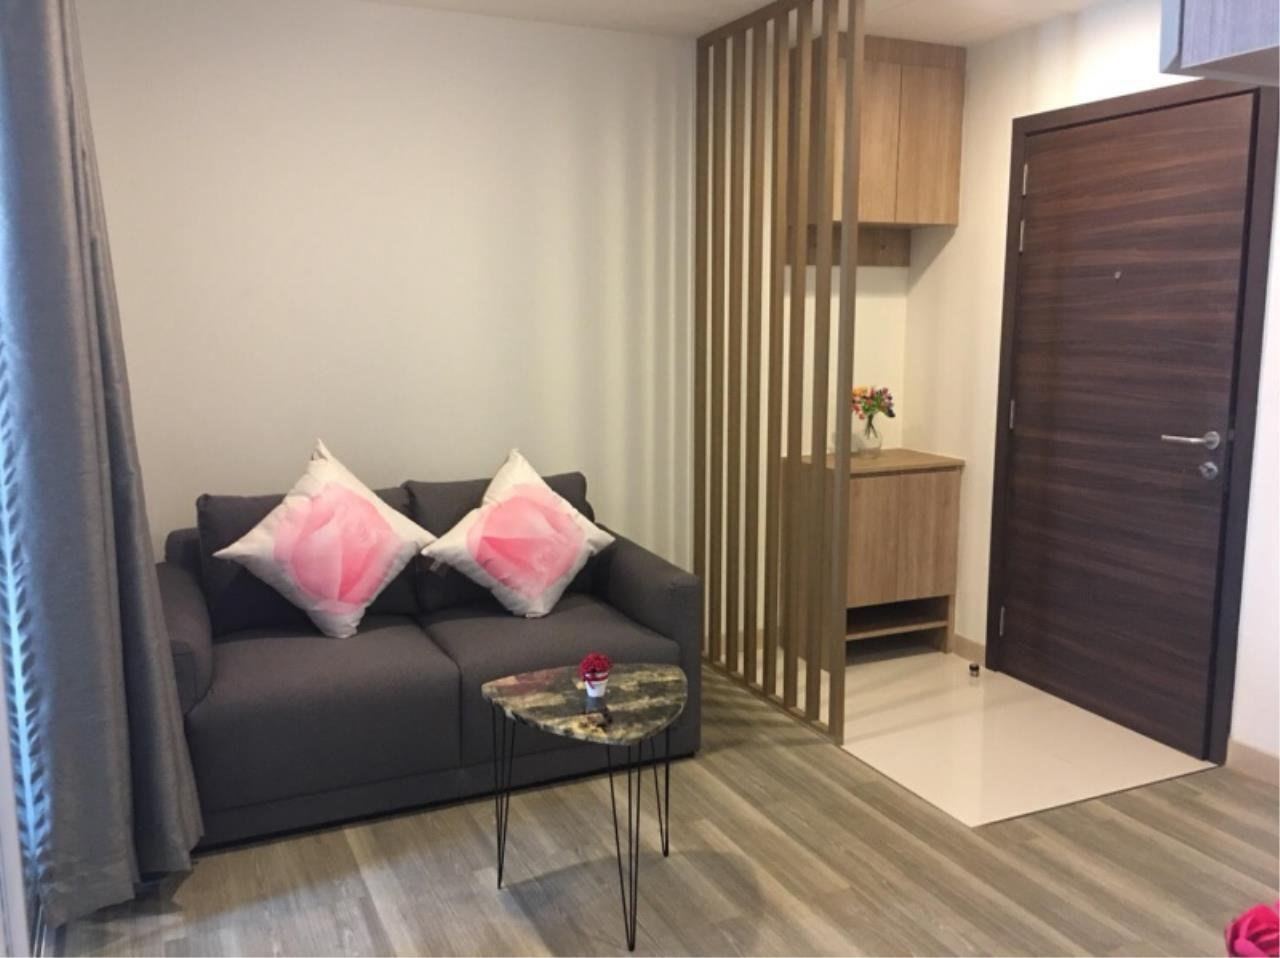 Century21 Skylux Agency's Moniiq Sukhumvit 64 / Condo For Rent / 1 Bedroom / 28 SQM / BTS Bang Chak / Bangkok 2